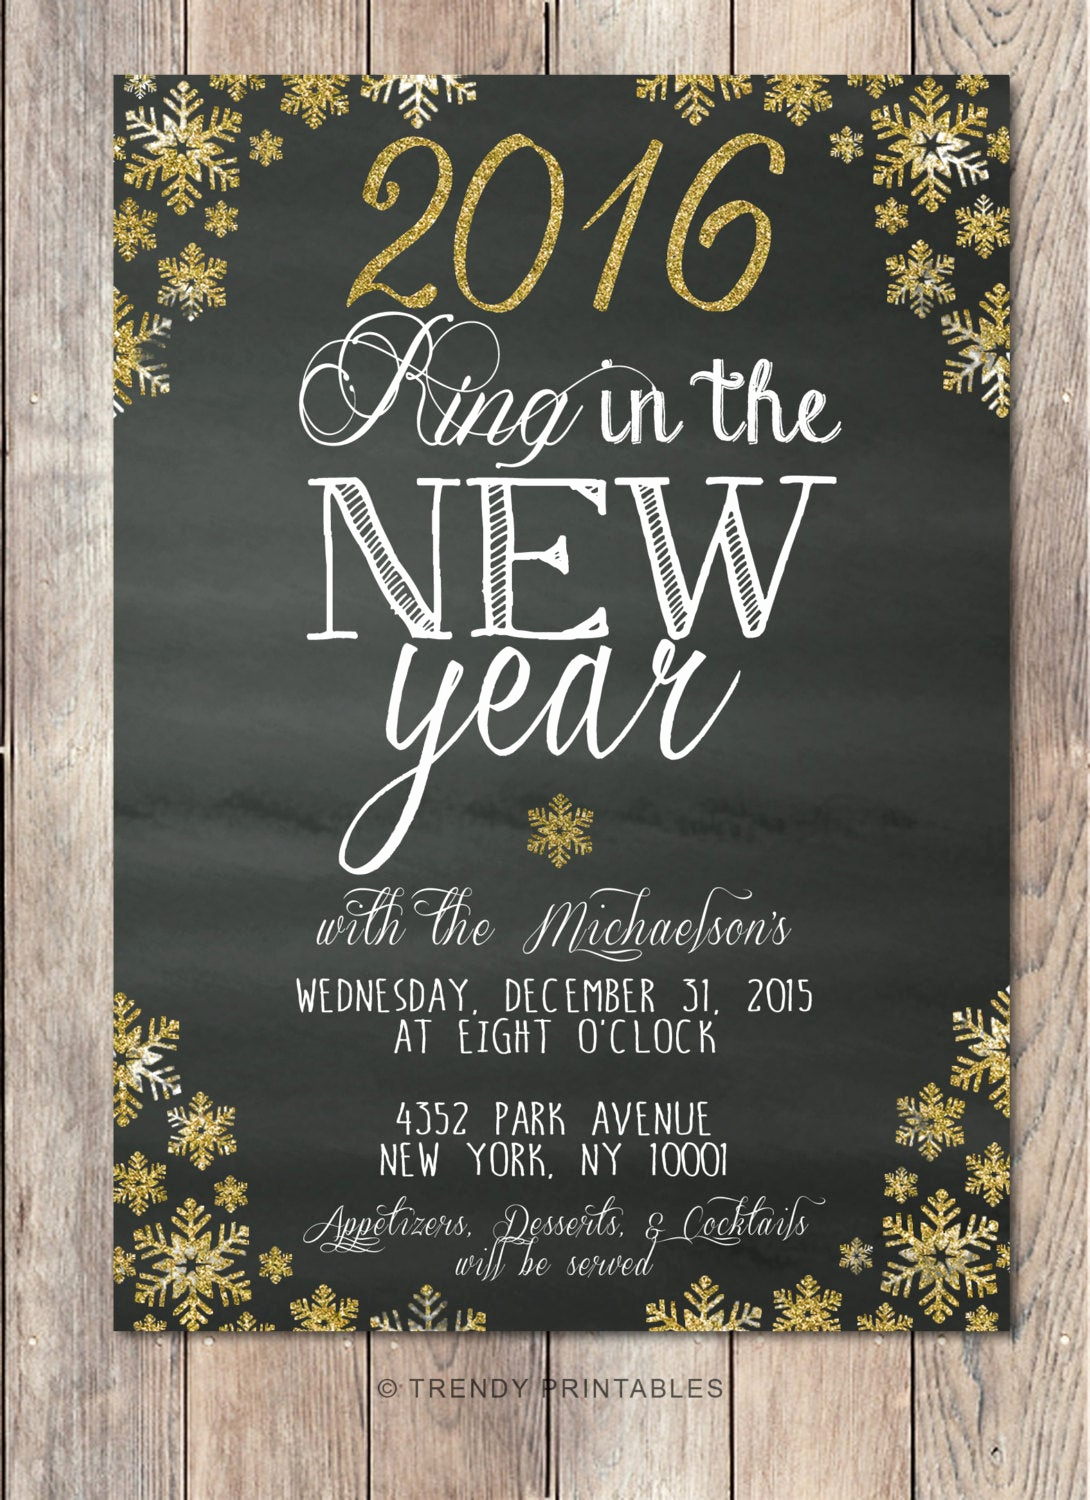 New Years Eve Invitation Template Inspirational New Years Eve Party Invitation New Years by Trendyprintables